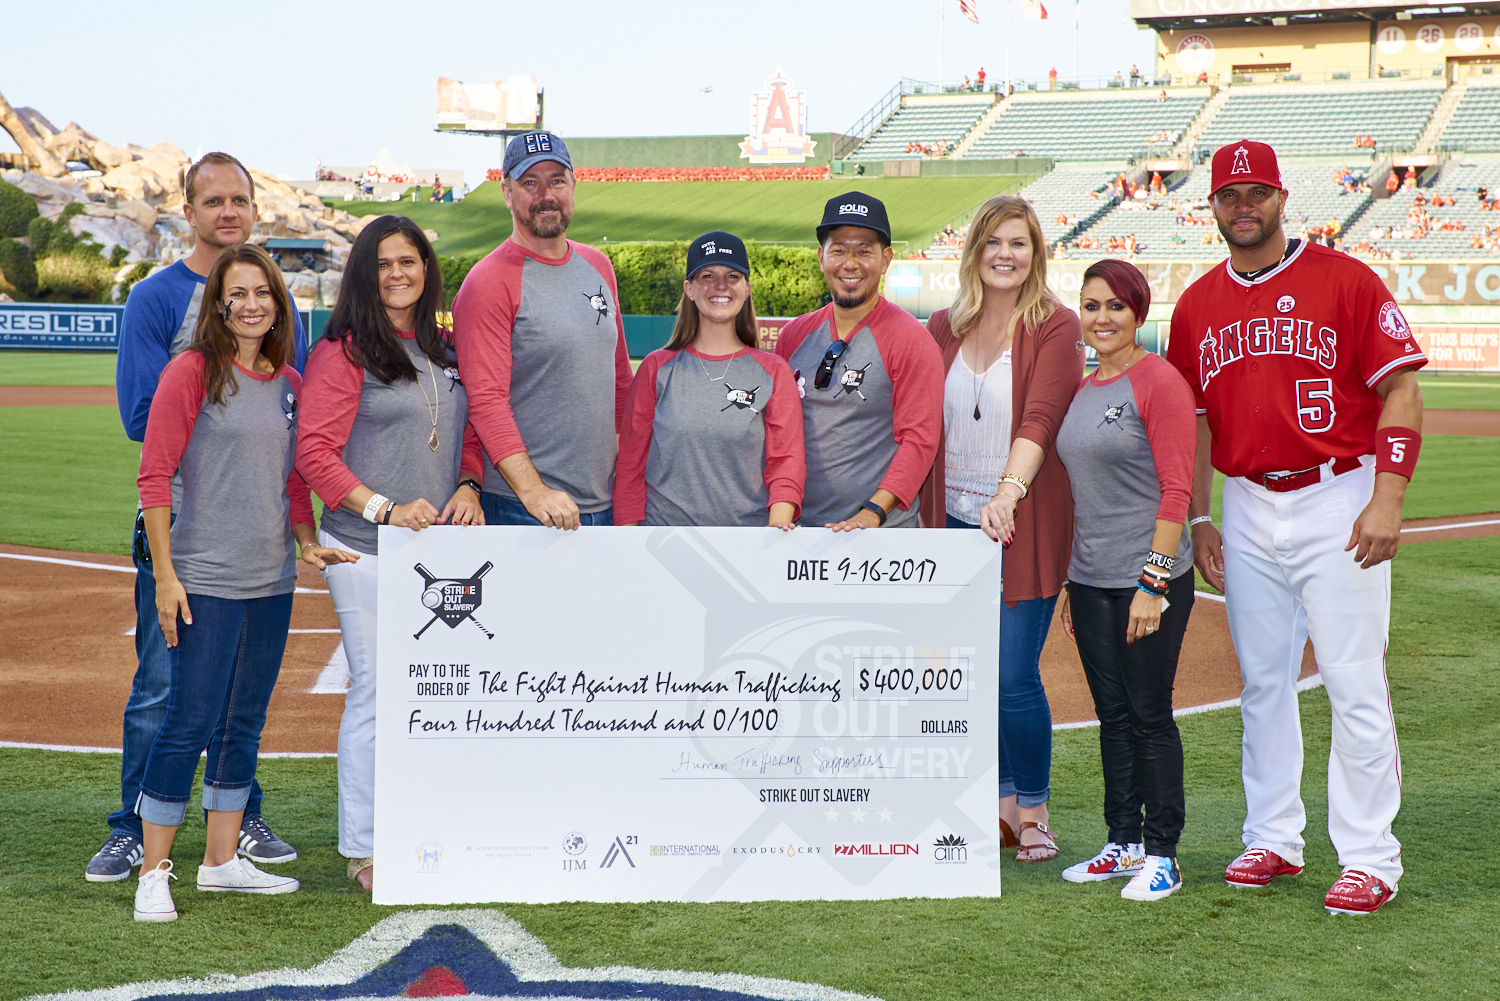 170916_SOS_Angel_Stadium_264.jpg